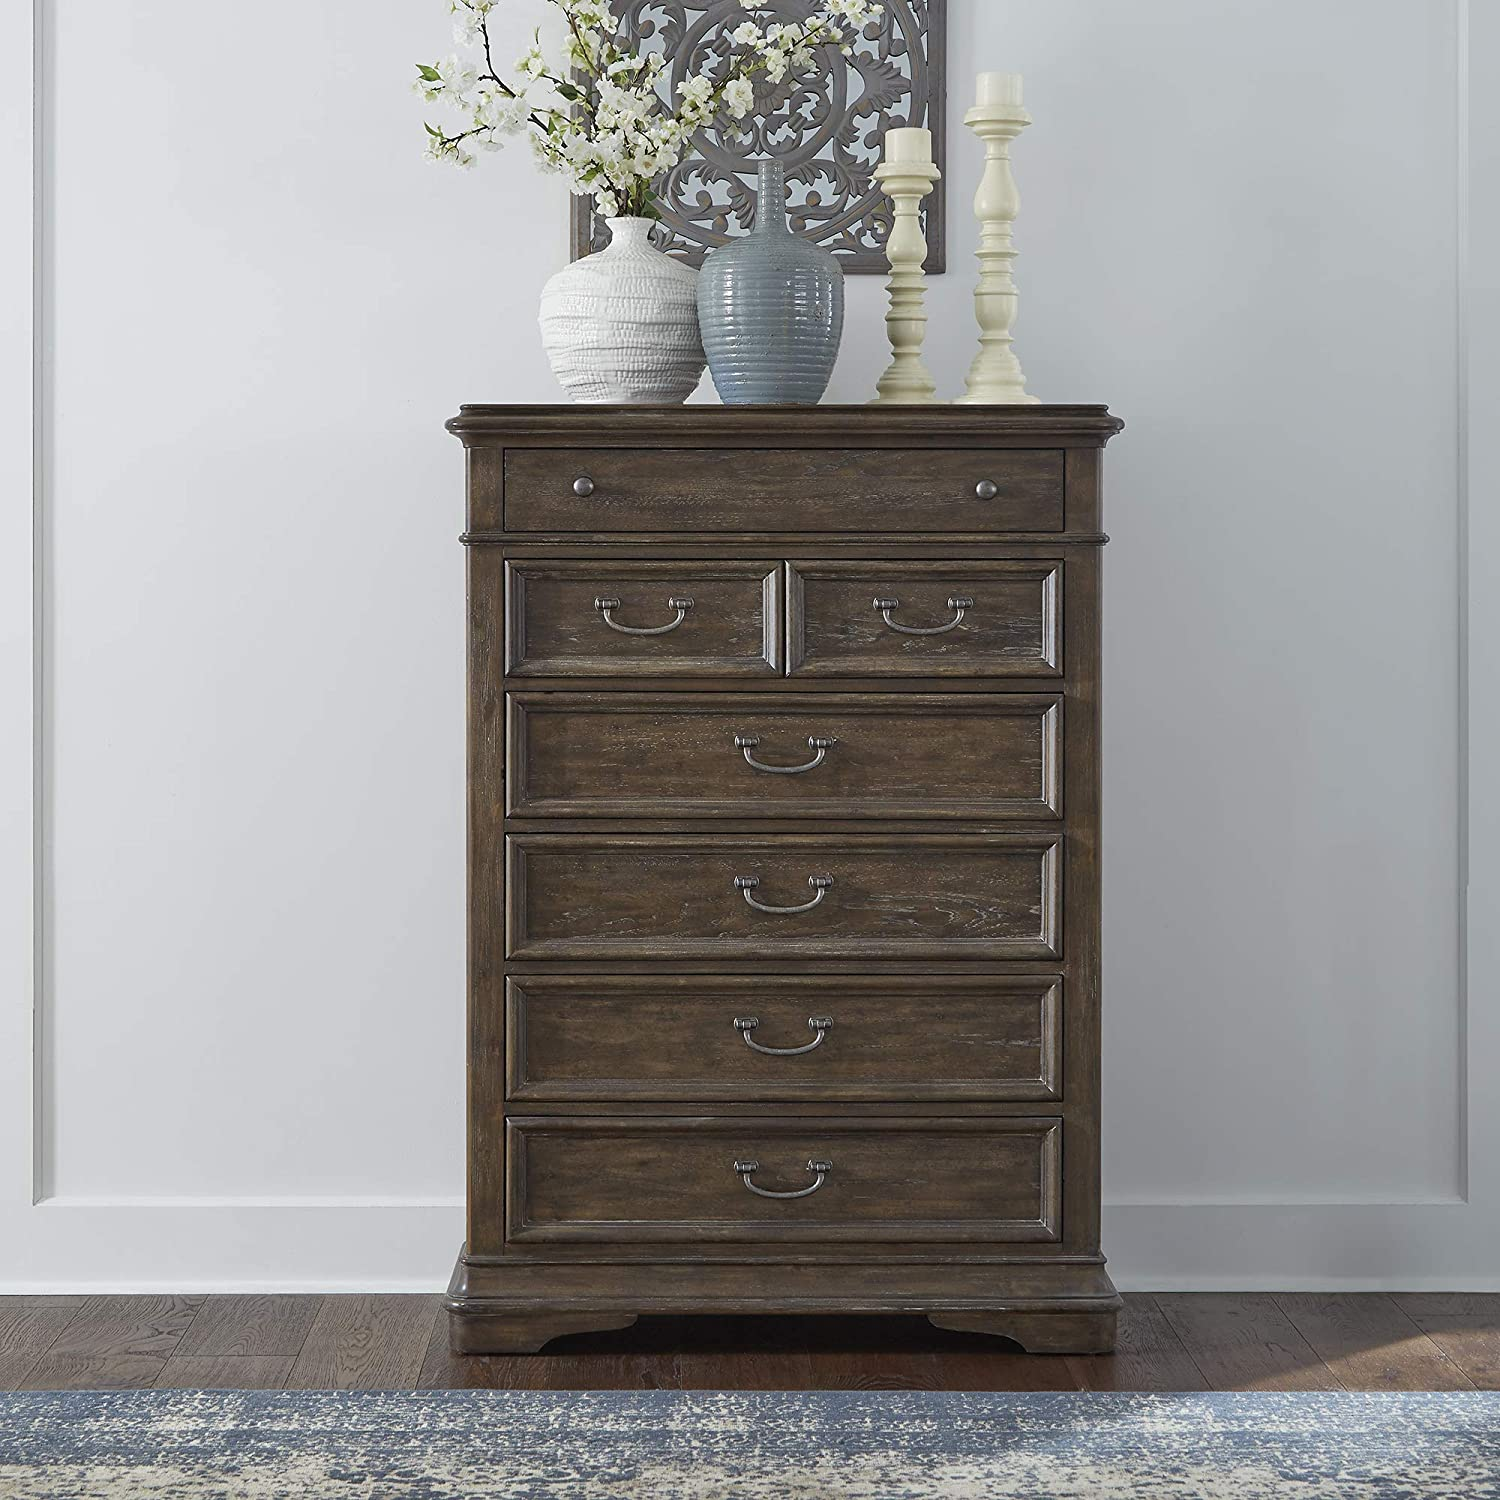 Liberty Furniture Industries Homestead 6 Drawer Chest, Brown